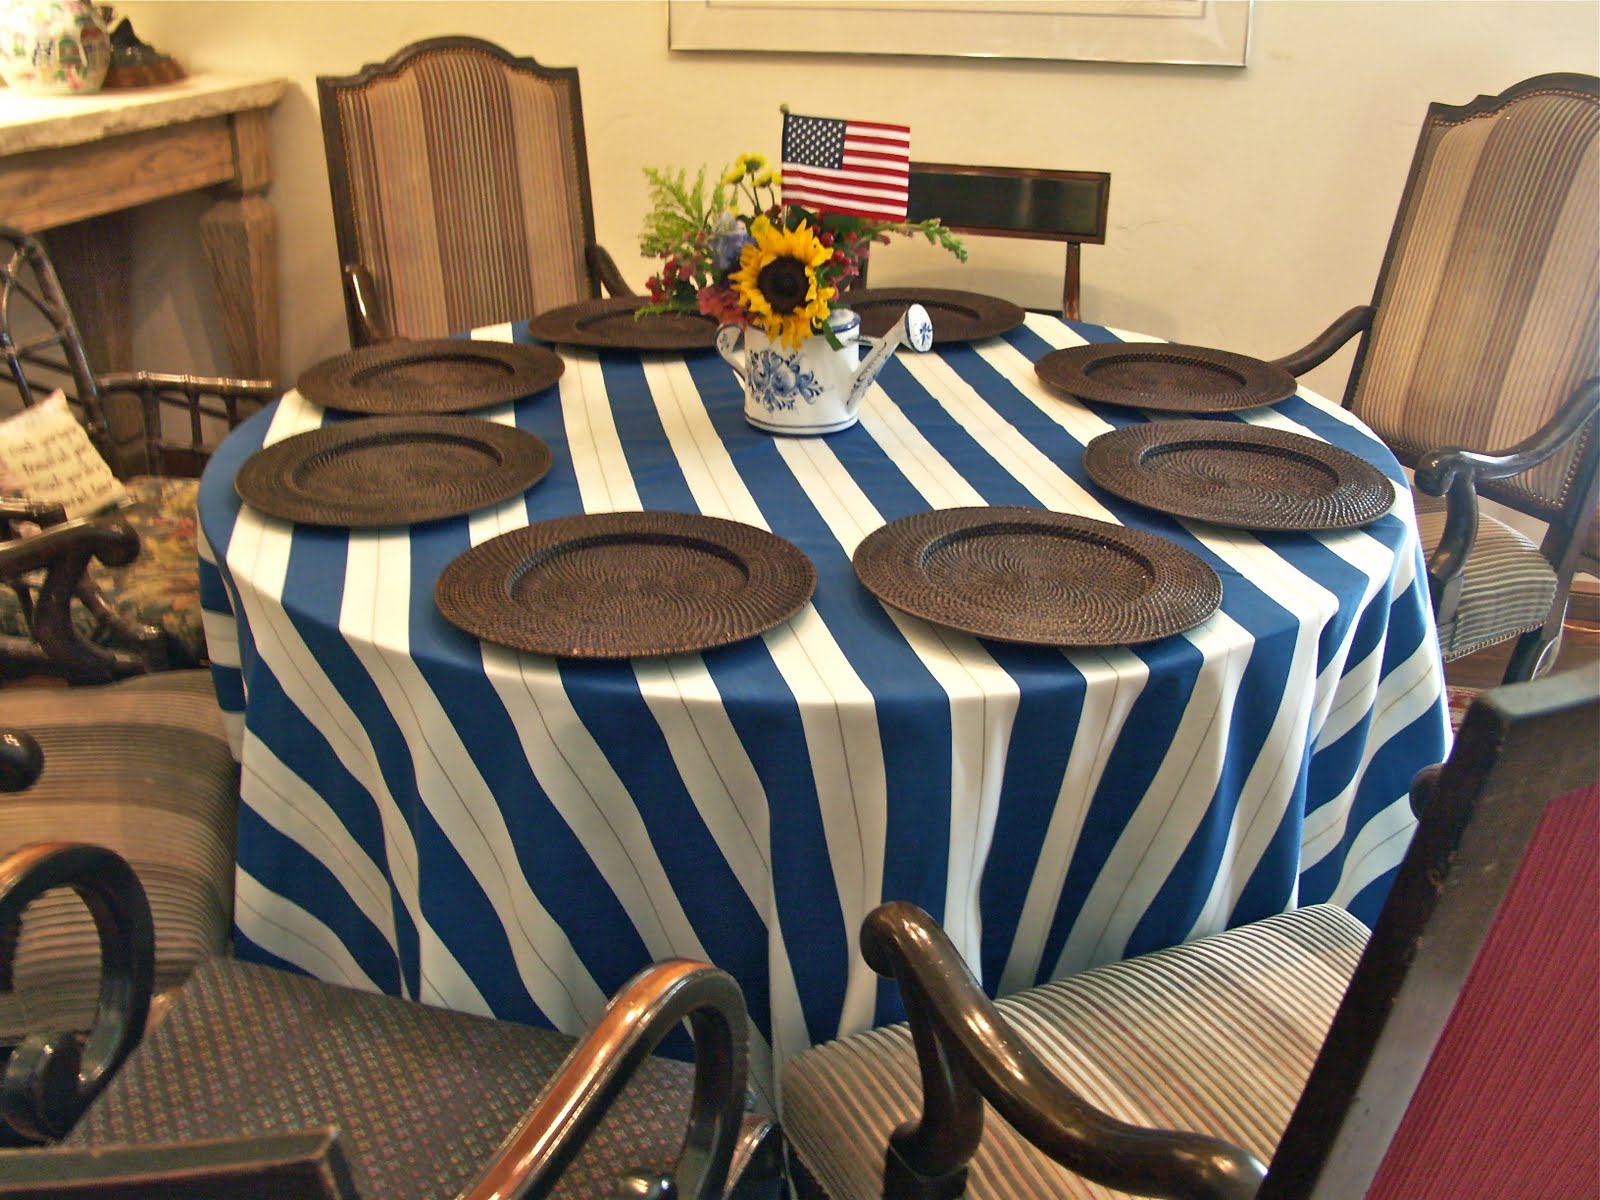 In The Living Room, I Used The Blue And White Stripe Tablecloth That I Made  Using Sunbrella Fabric.